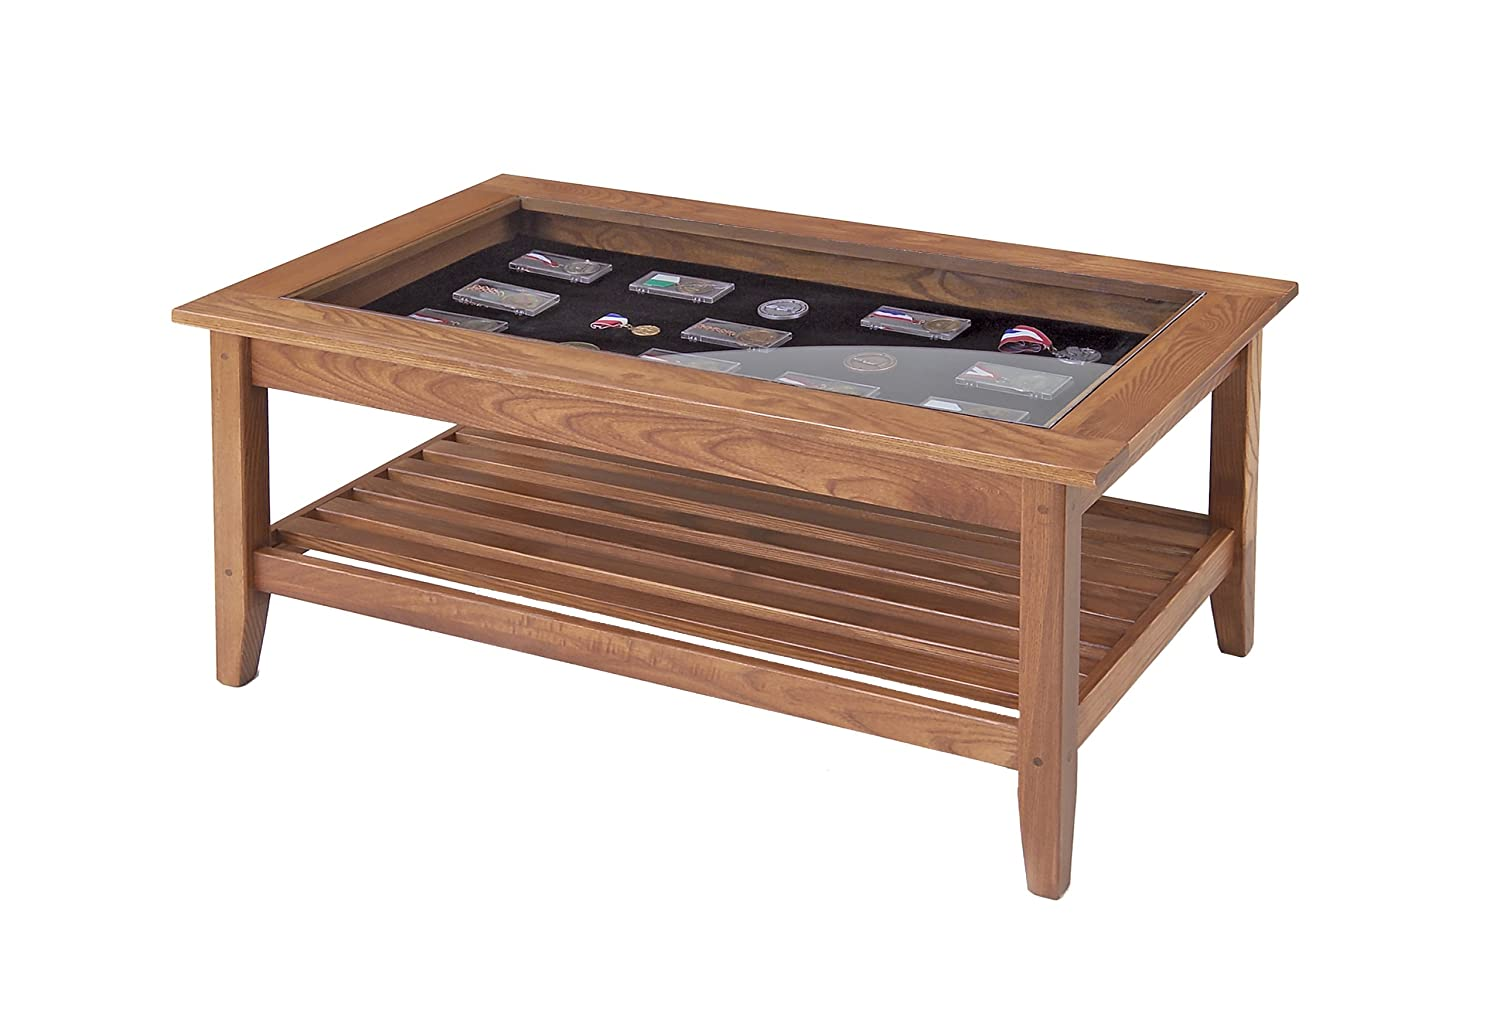 Manchester Wood American Made Furniture Glass Top Display